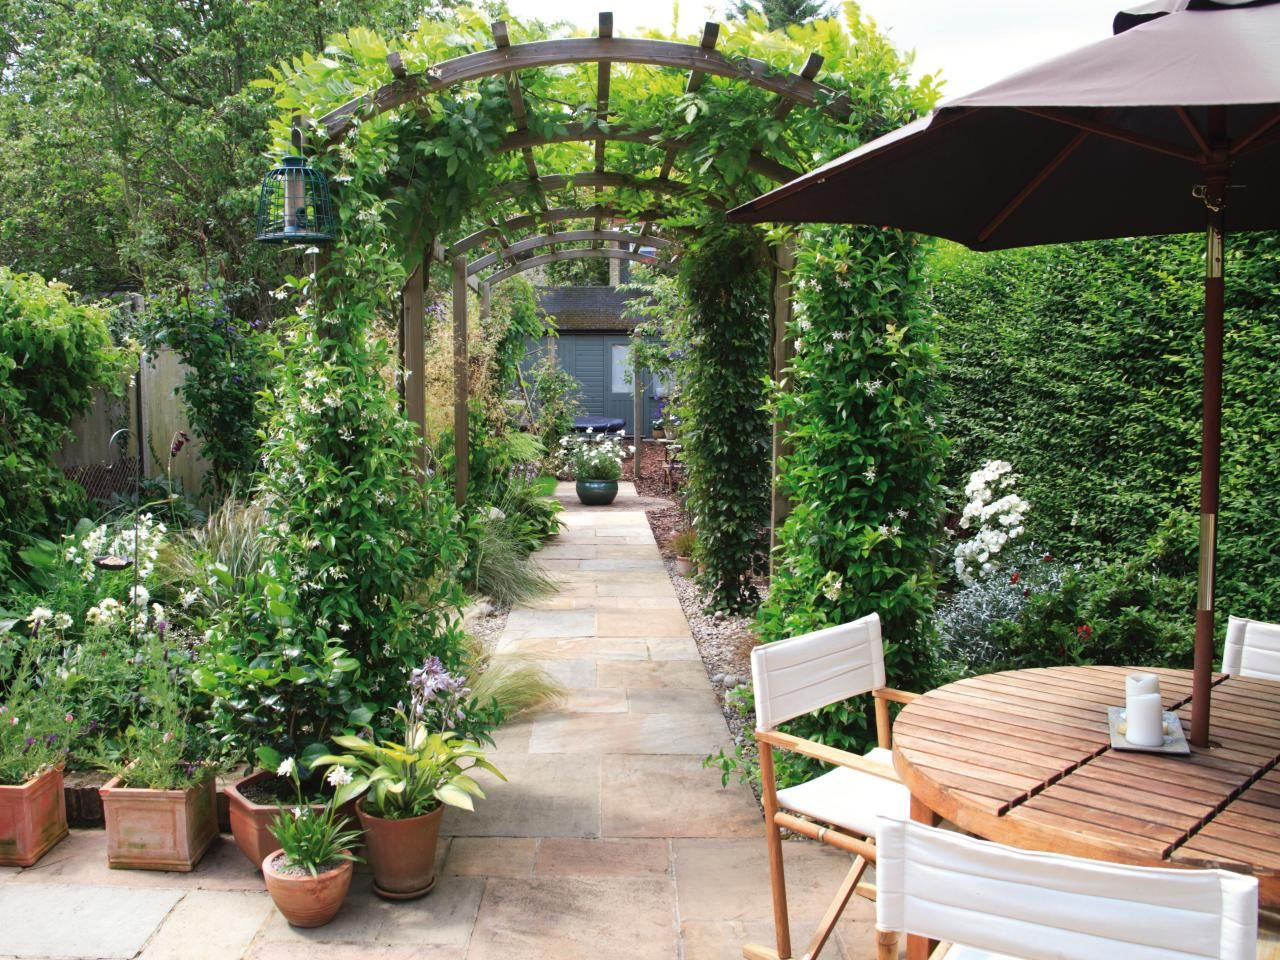 Small Outdoor Space Design Ideas | Outdoor Spaces | Pinterest ...